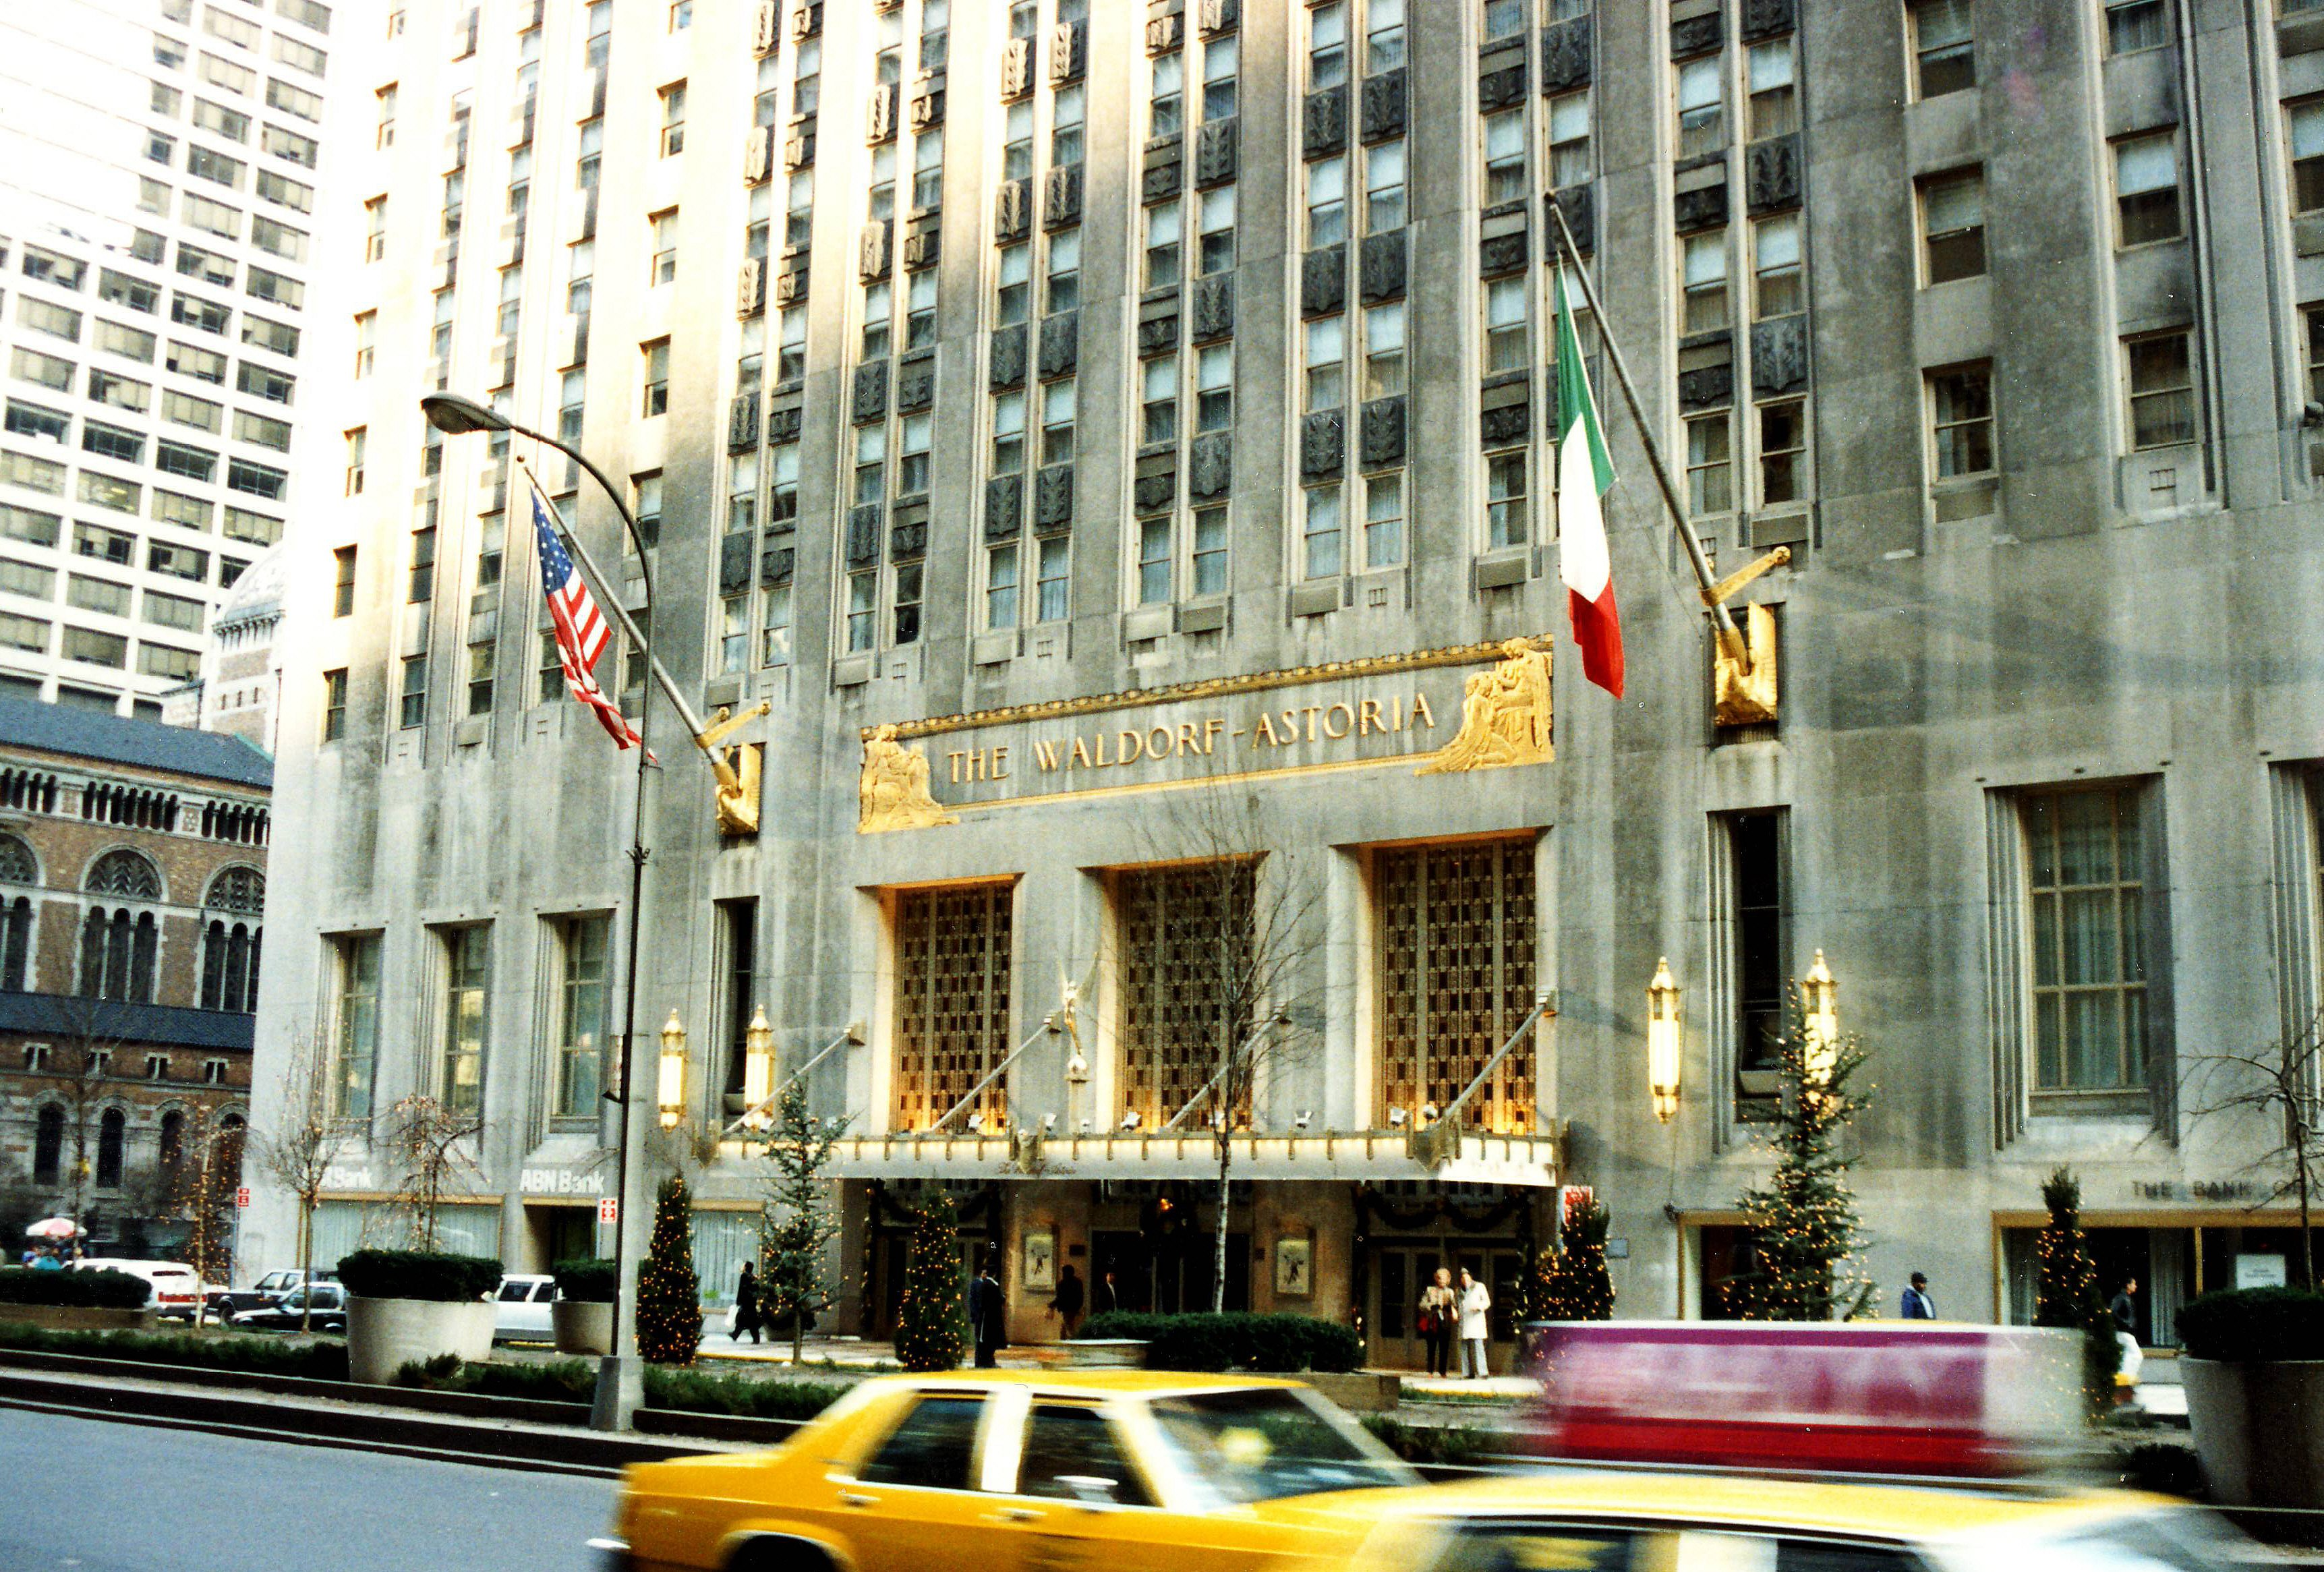 Waldorf Astoria to shut down during three-year renovation | Hotel Management